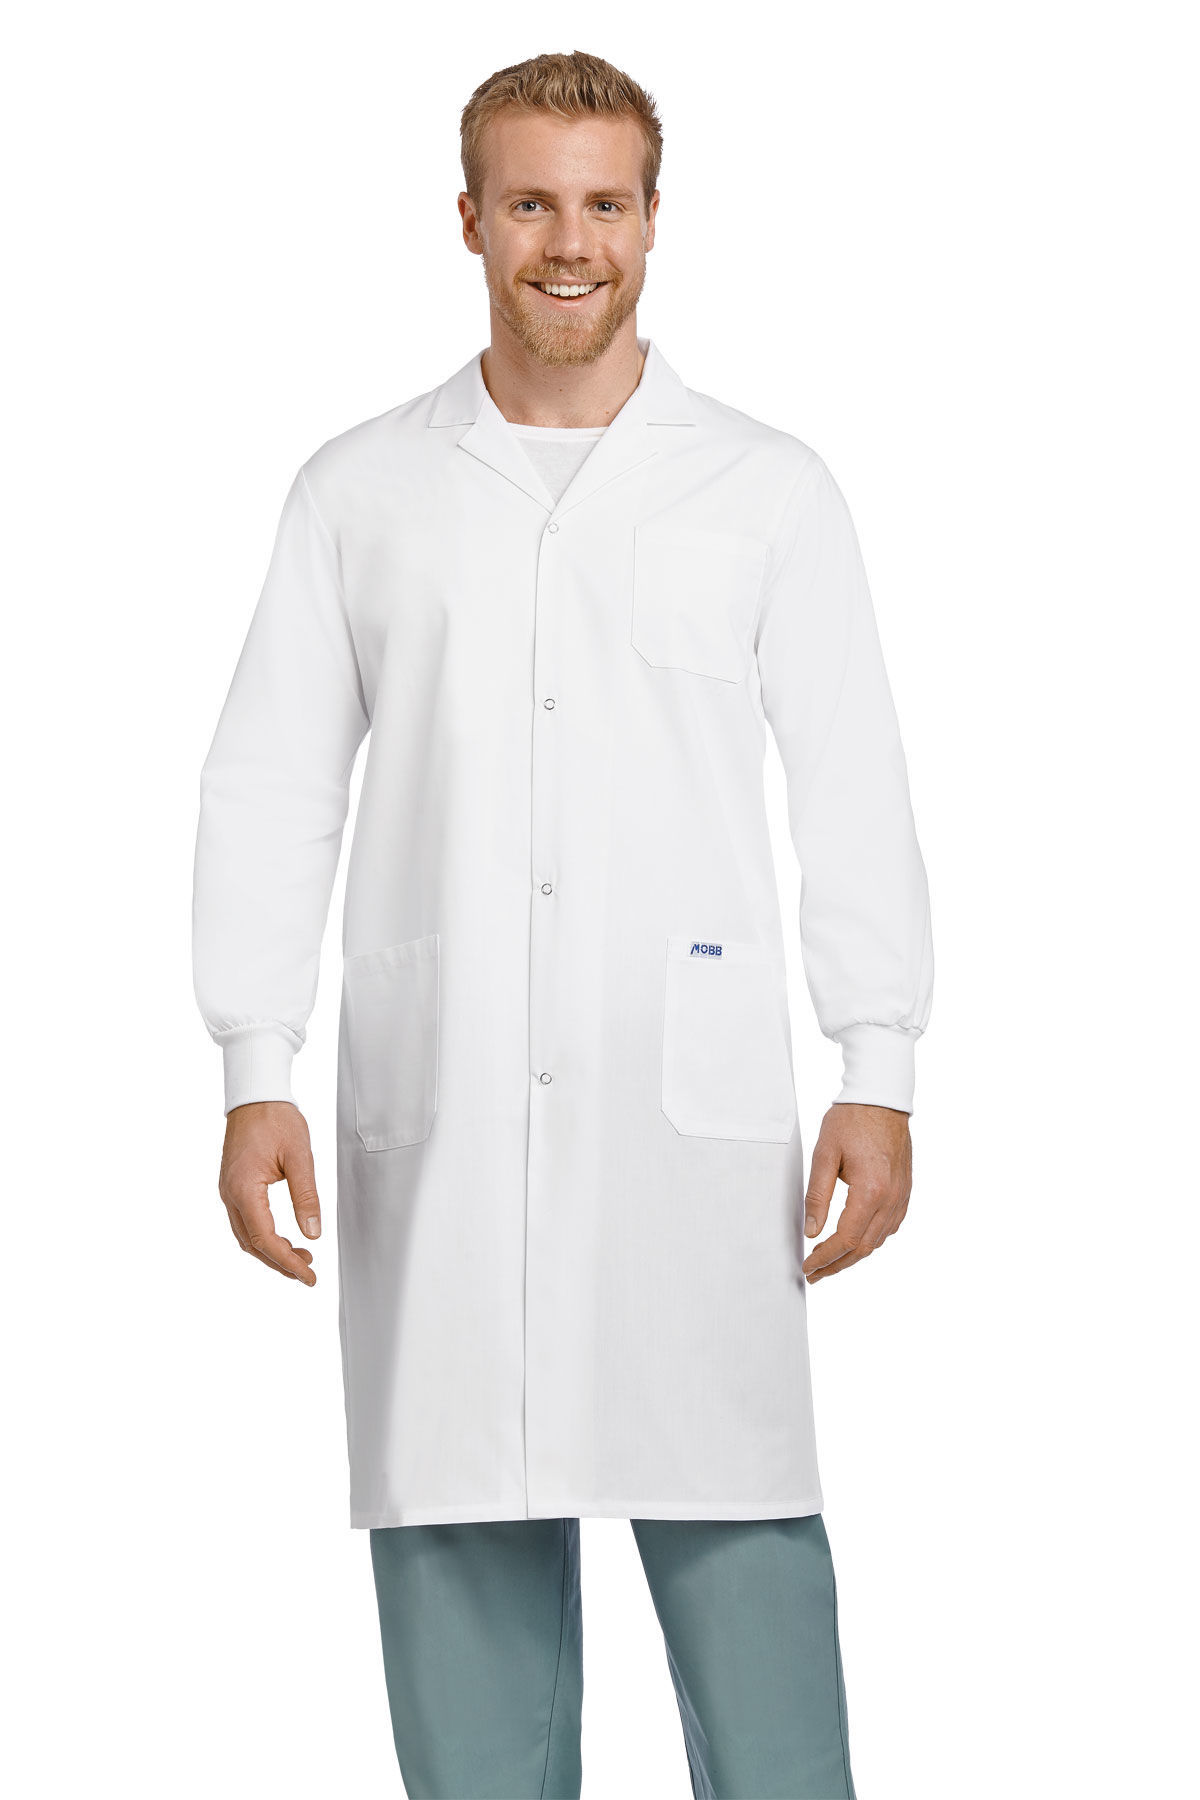 Picture of Full Length Unisex Snap Lab Coat With Knitted Cuffs - L507-L